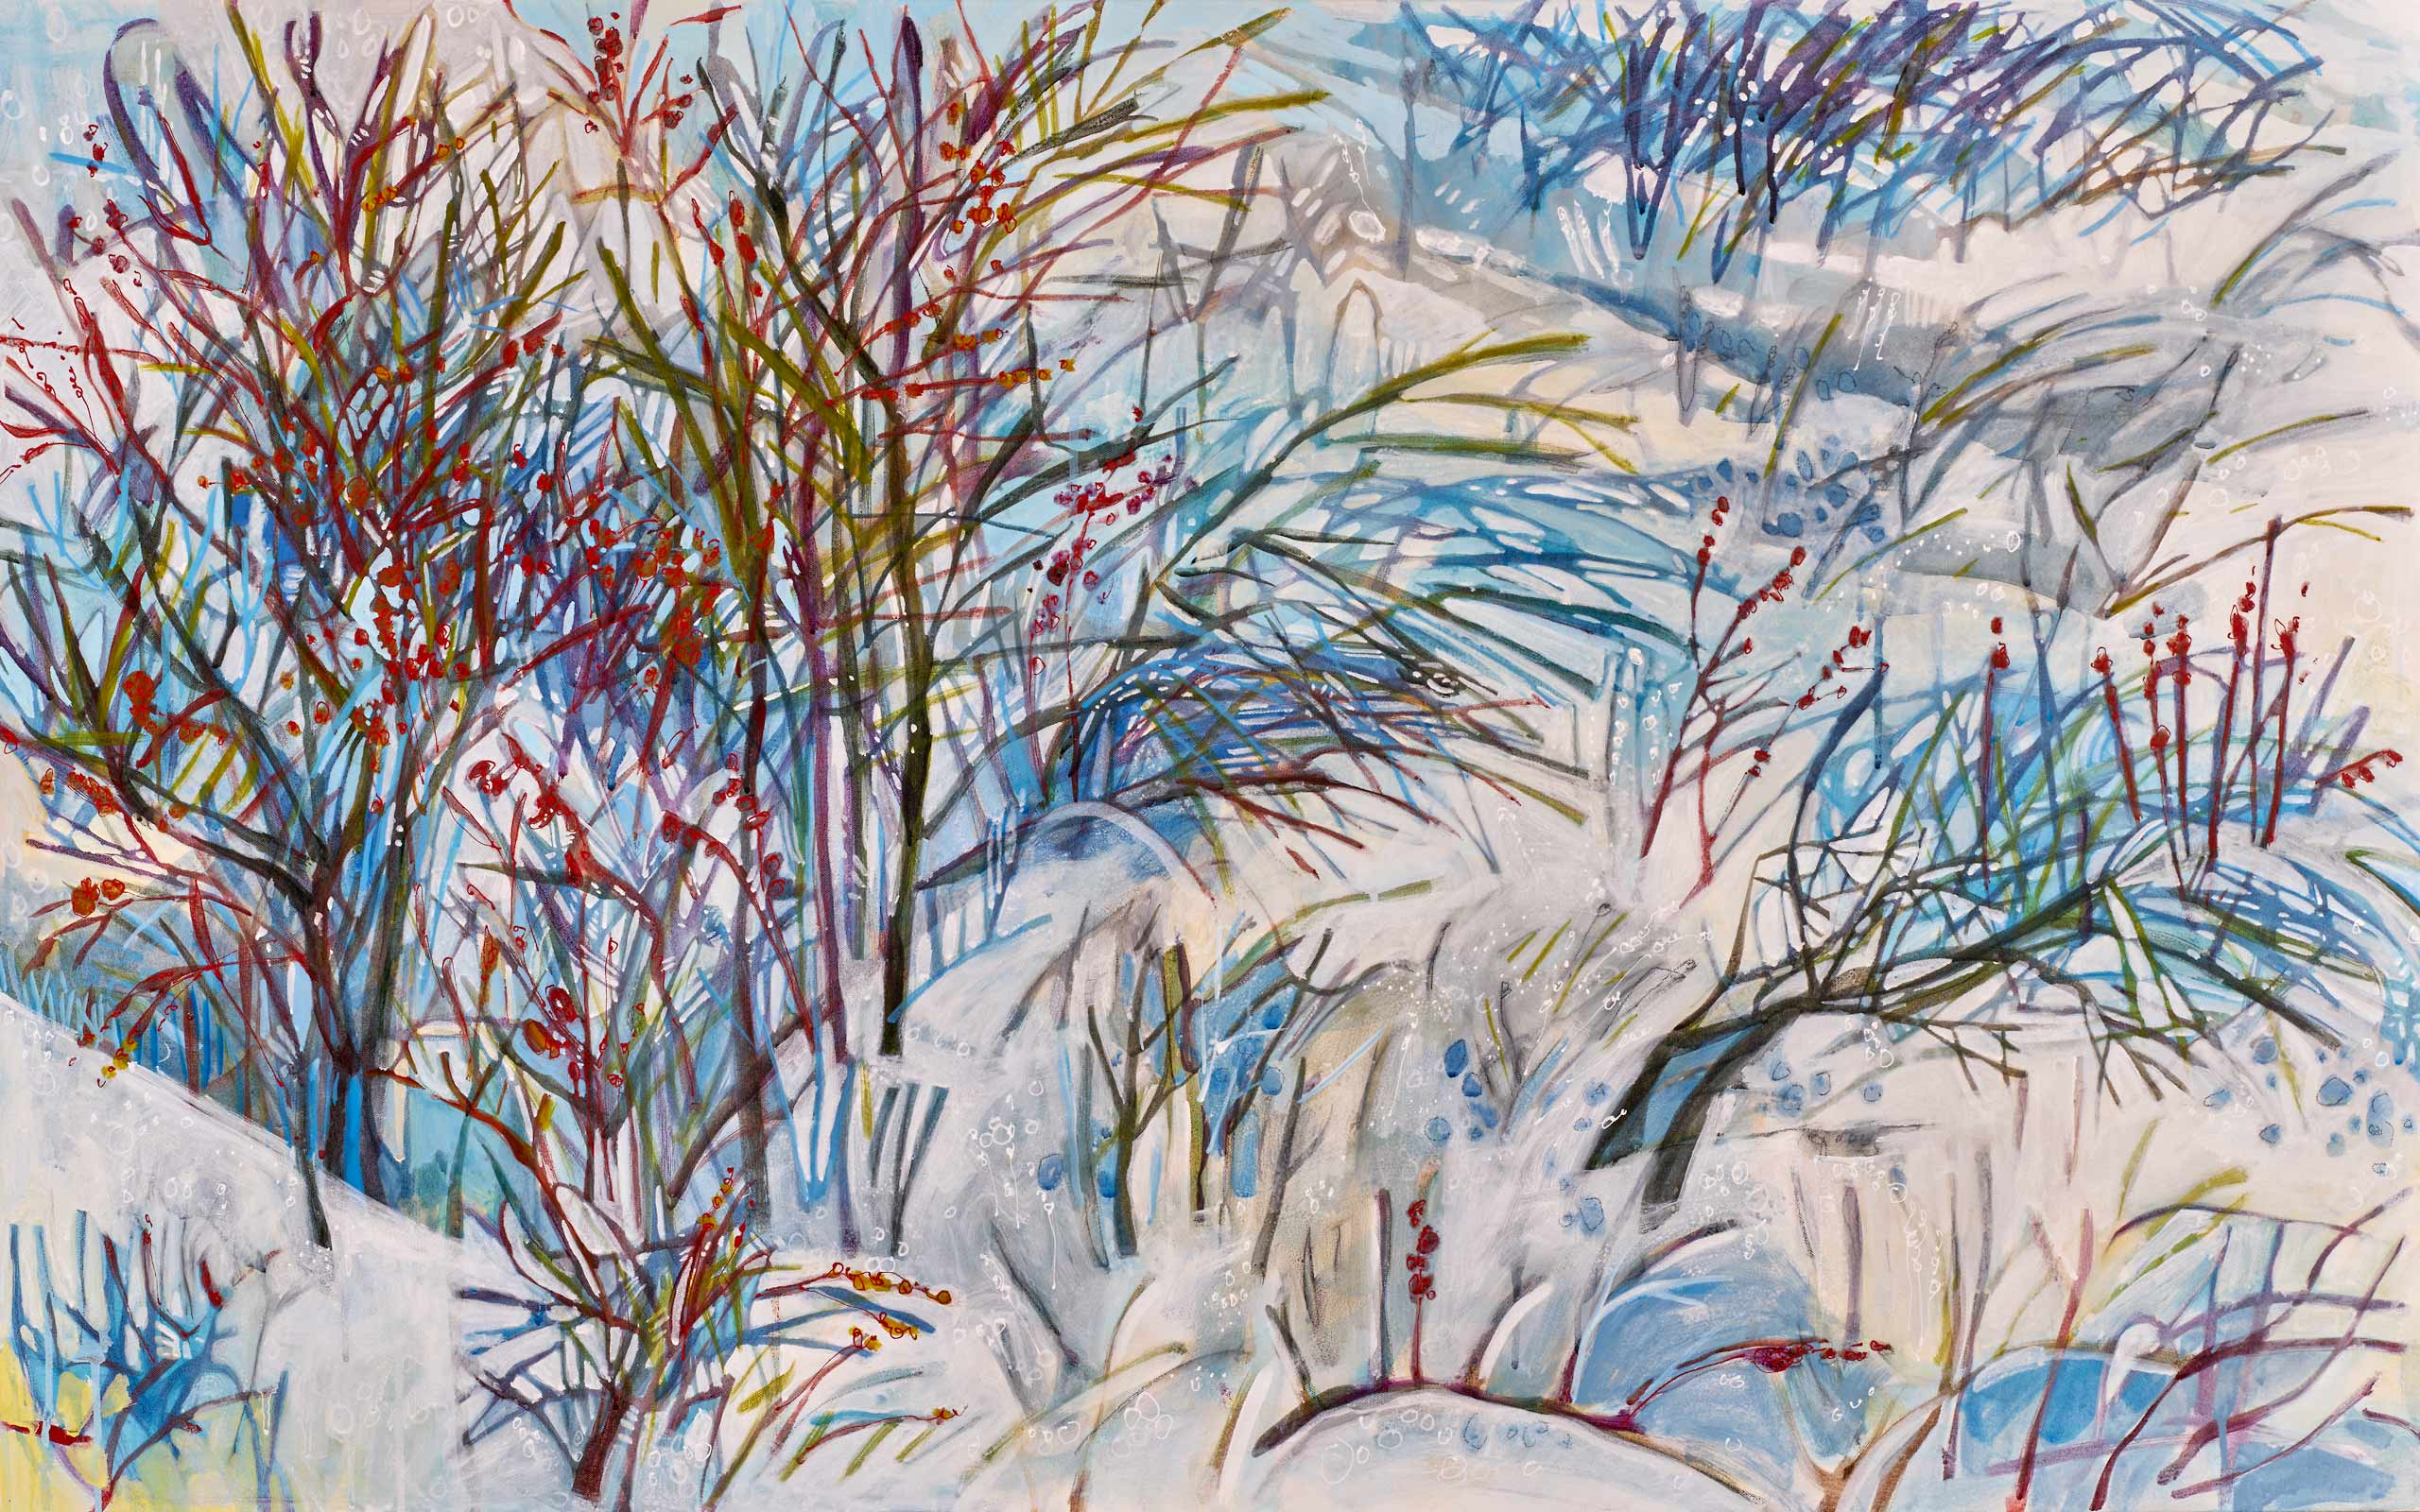 new paintings by Lance Whitner at Pine Moon Fine Art.  Walton Peak Shrubs, 31x50